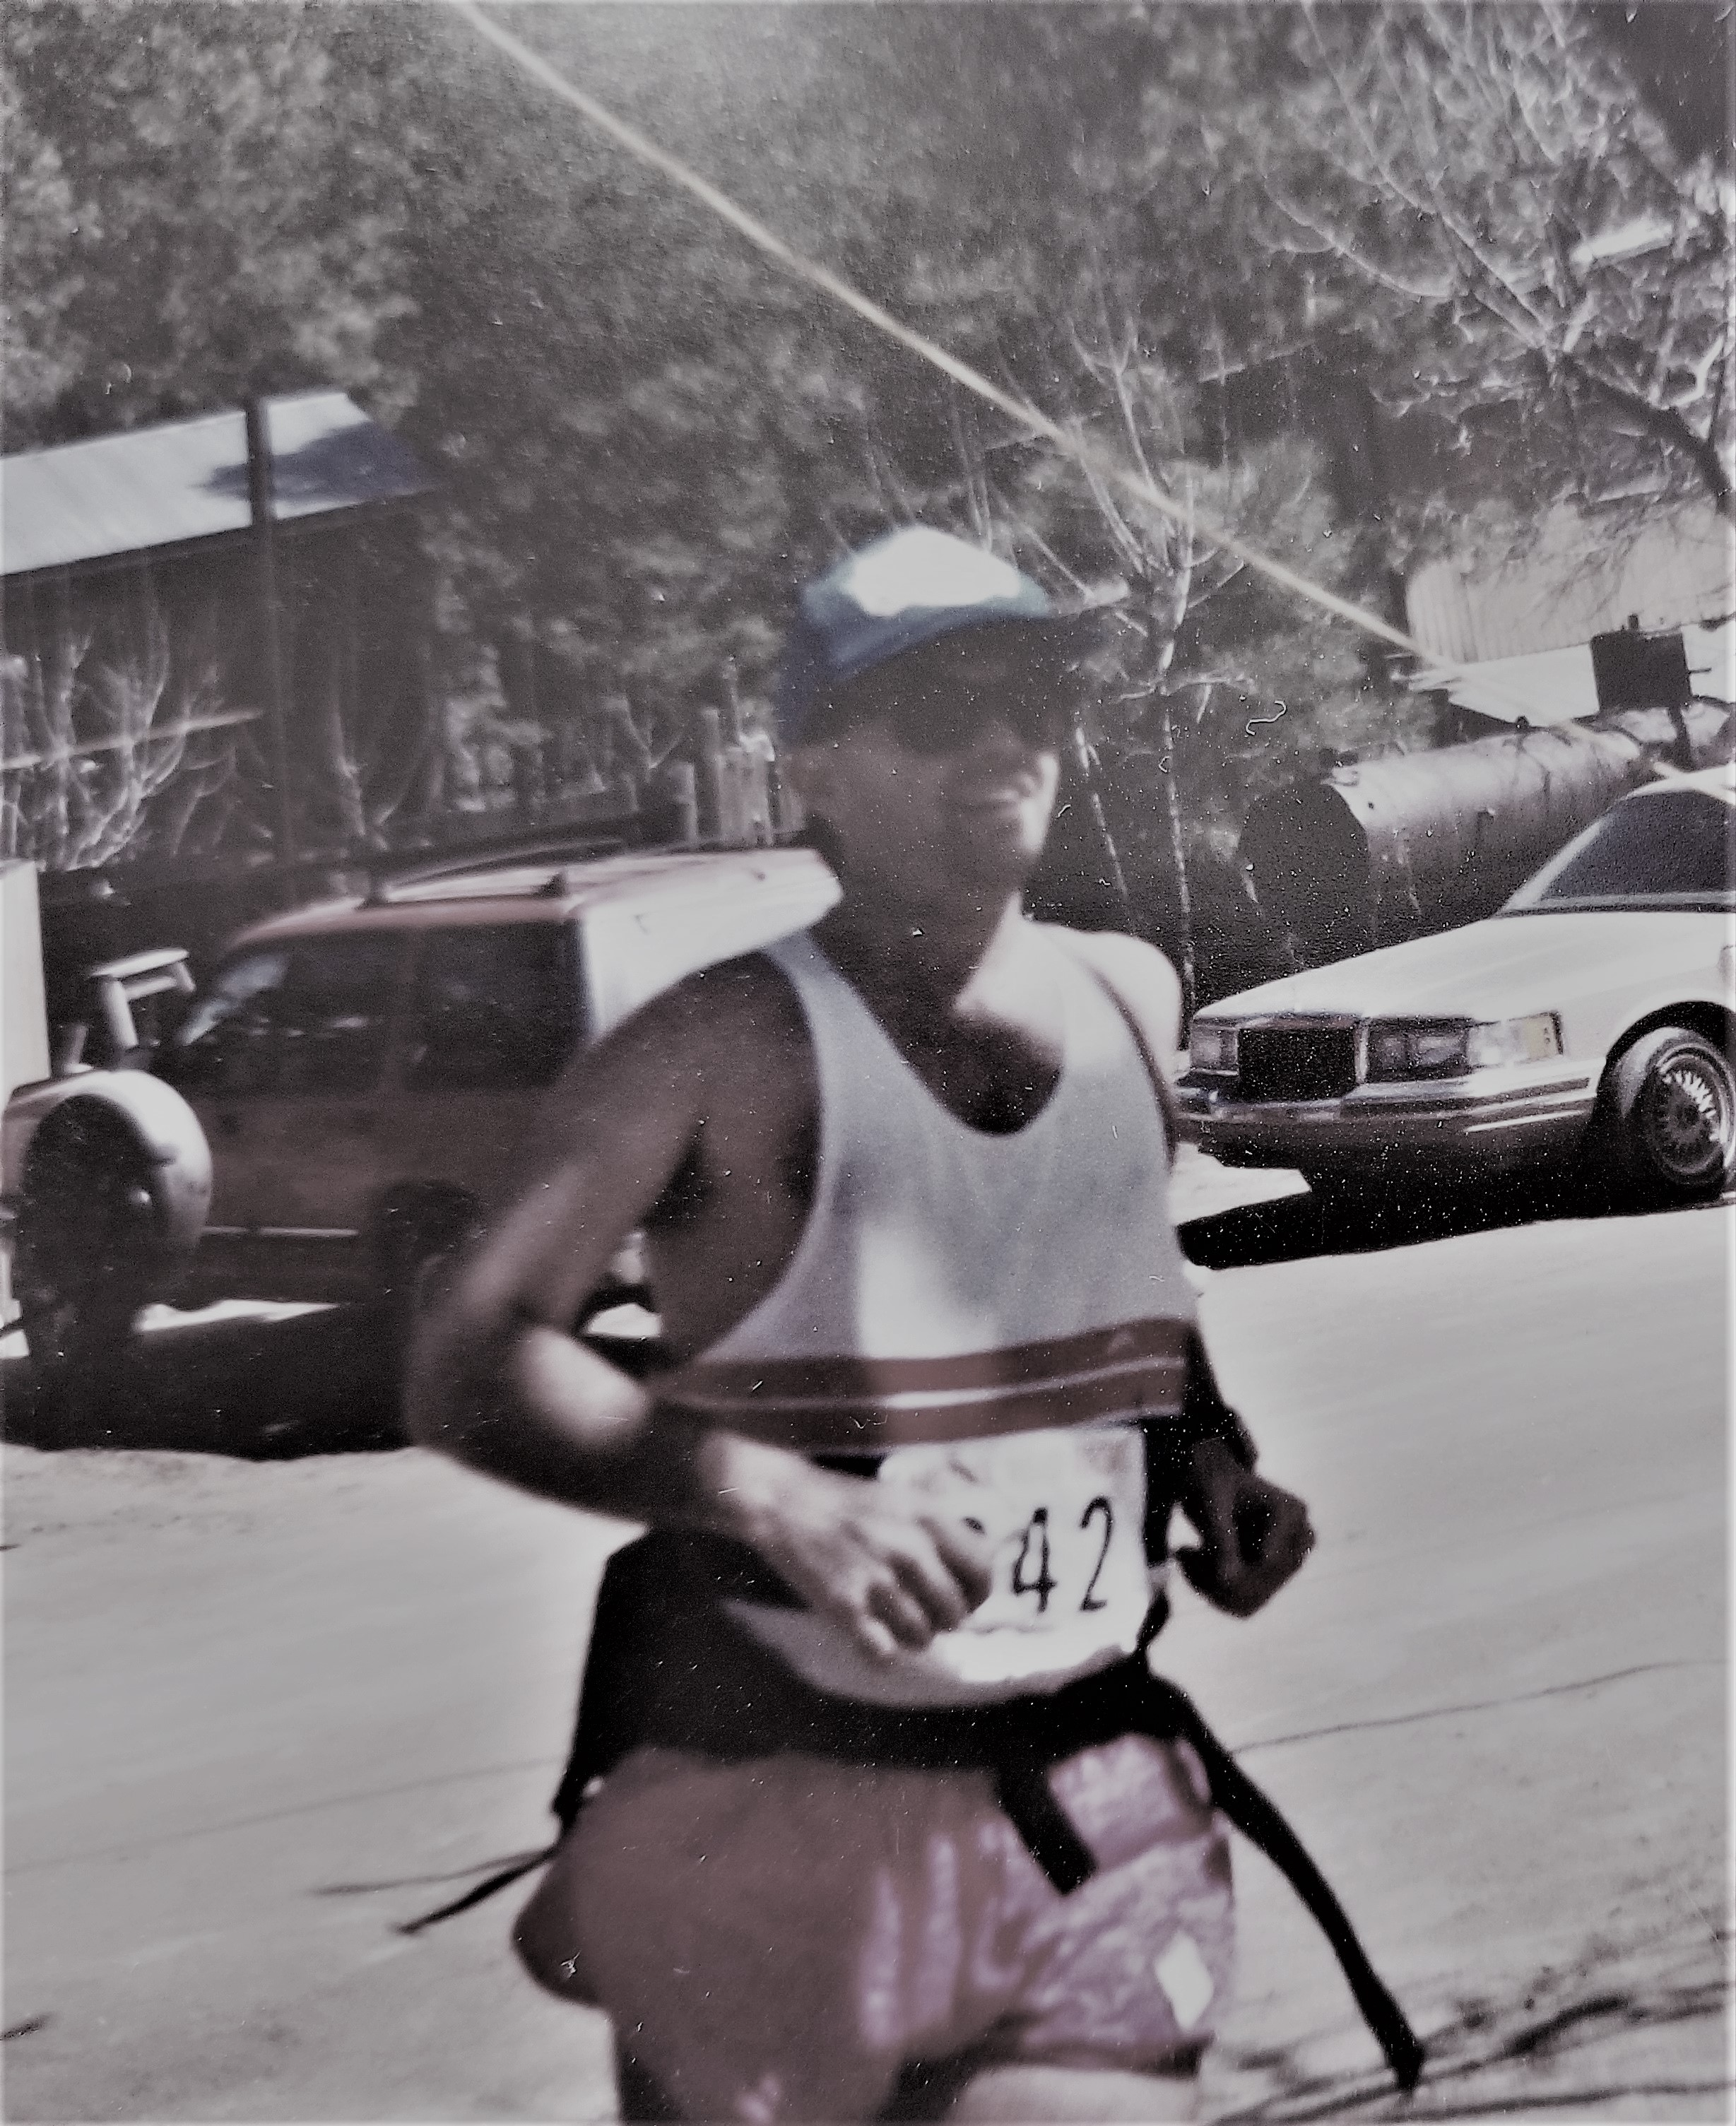 Finishing my first Crown King Scramble in March of 1992.